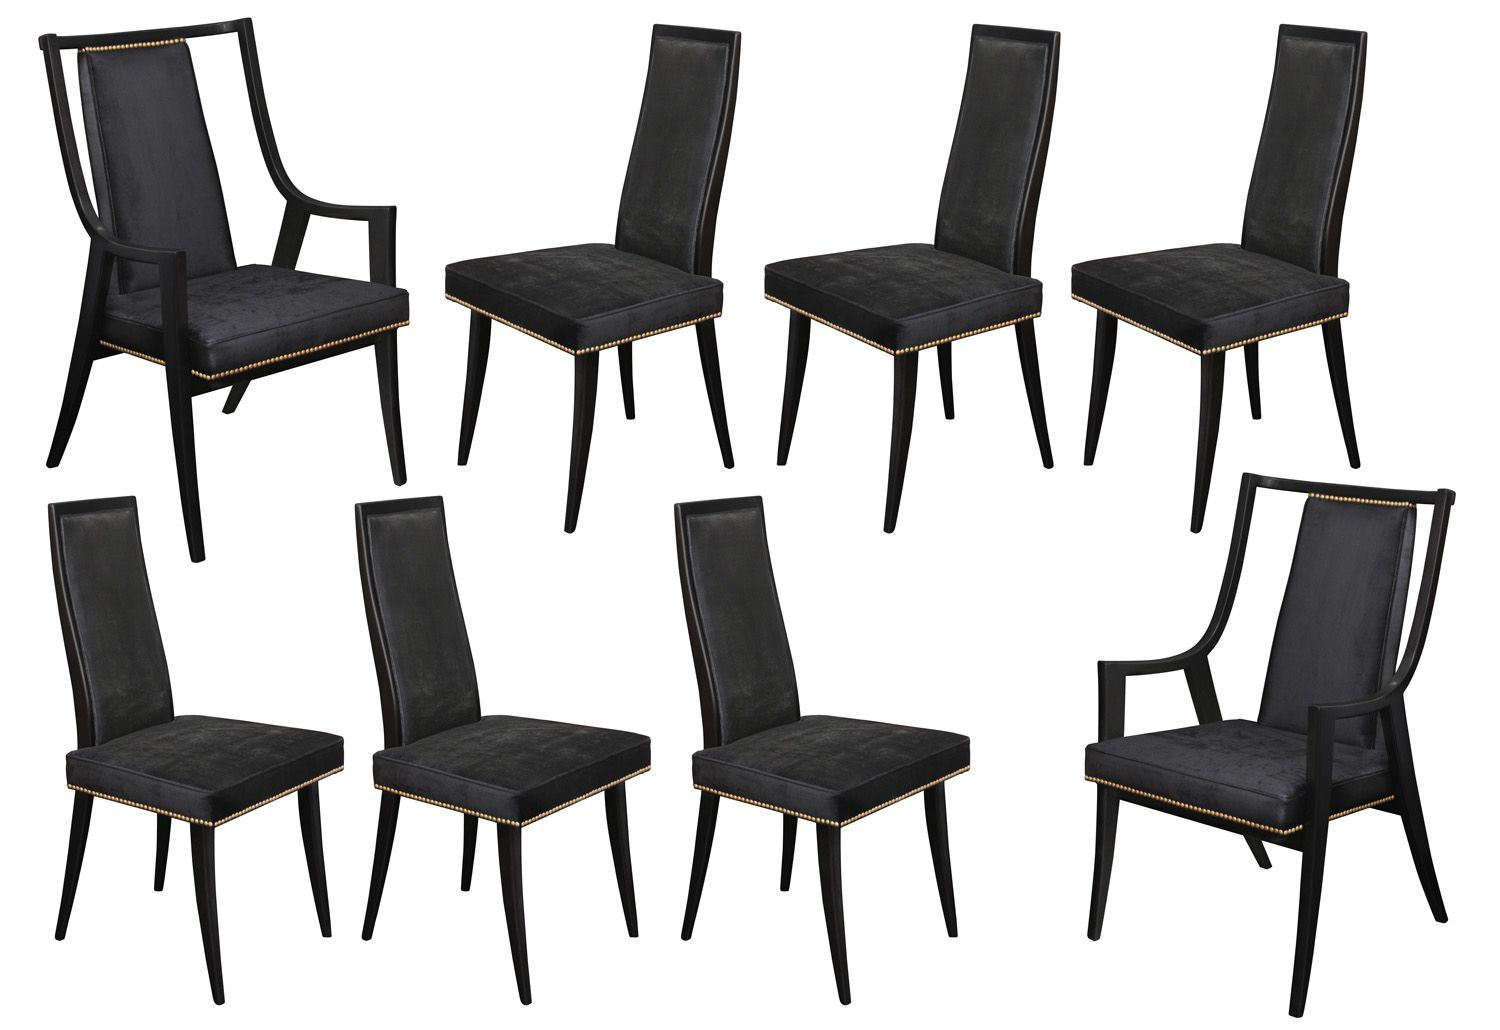 Probber 180 set 8 Classic 2 arms diningchairs150 hires.jpg